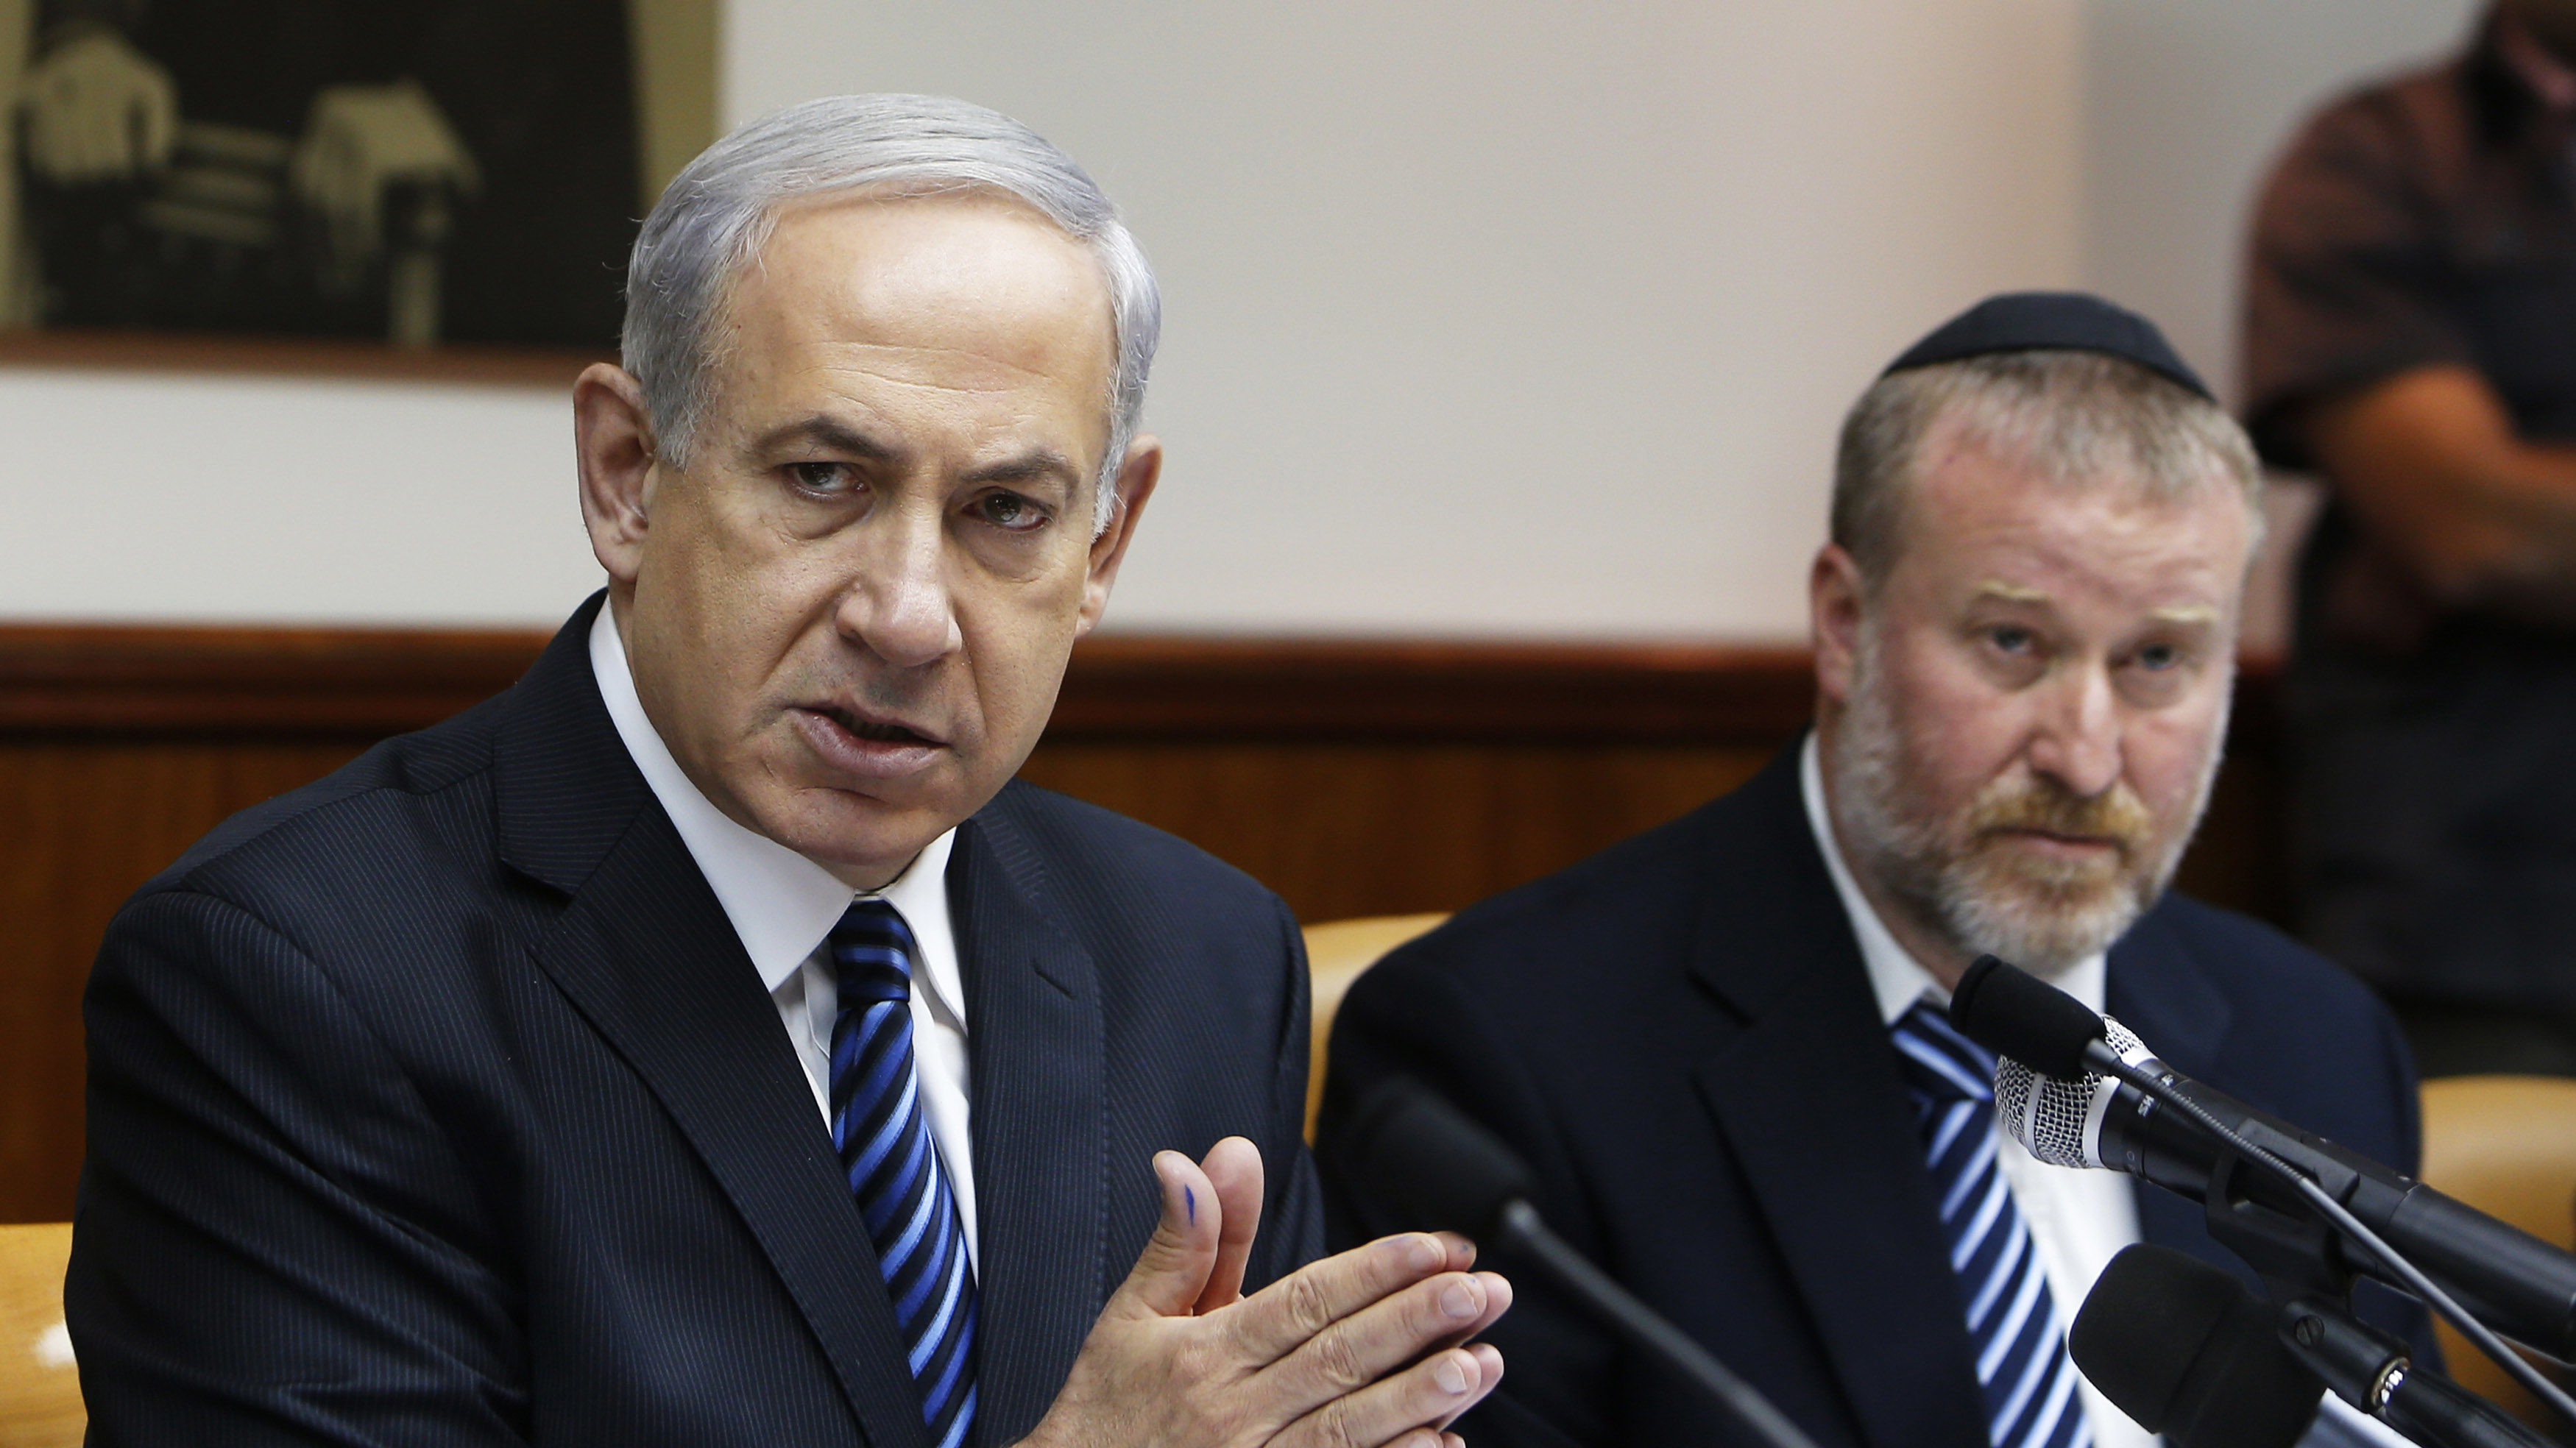 Netanyahu Accuses His Accuser of Attempted Coup D'état